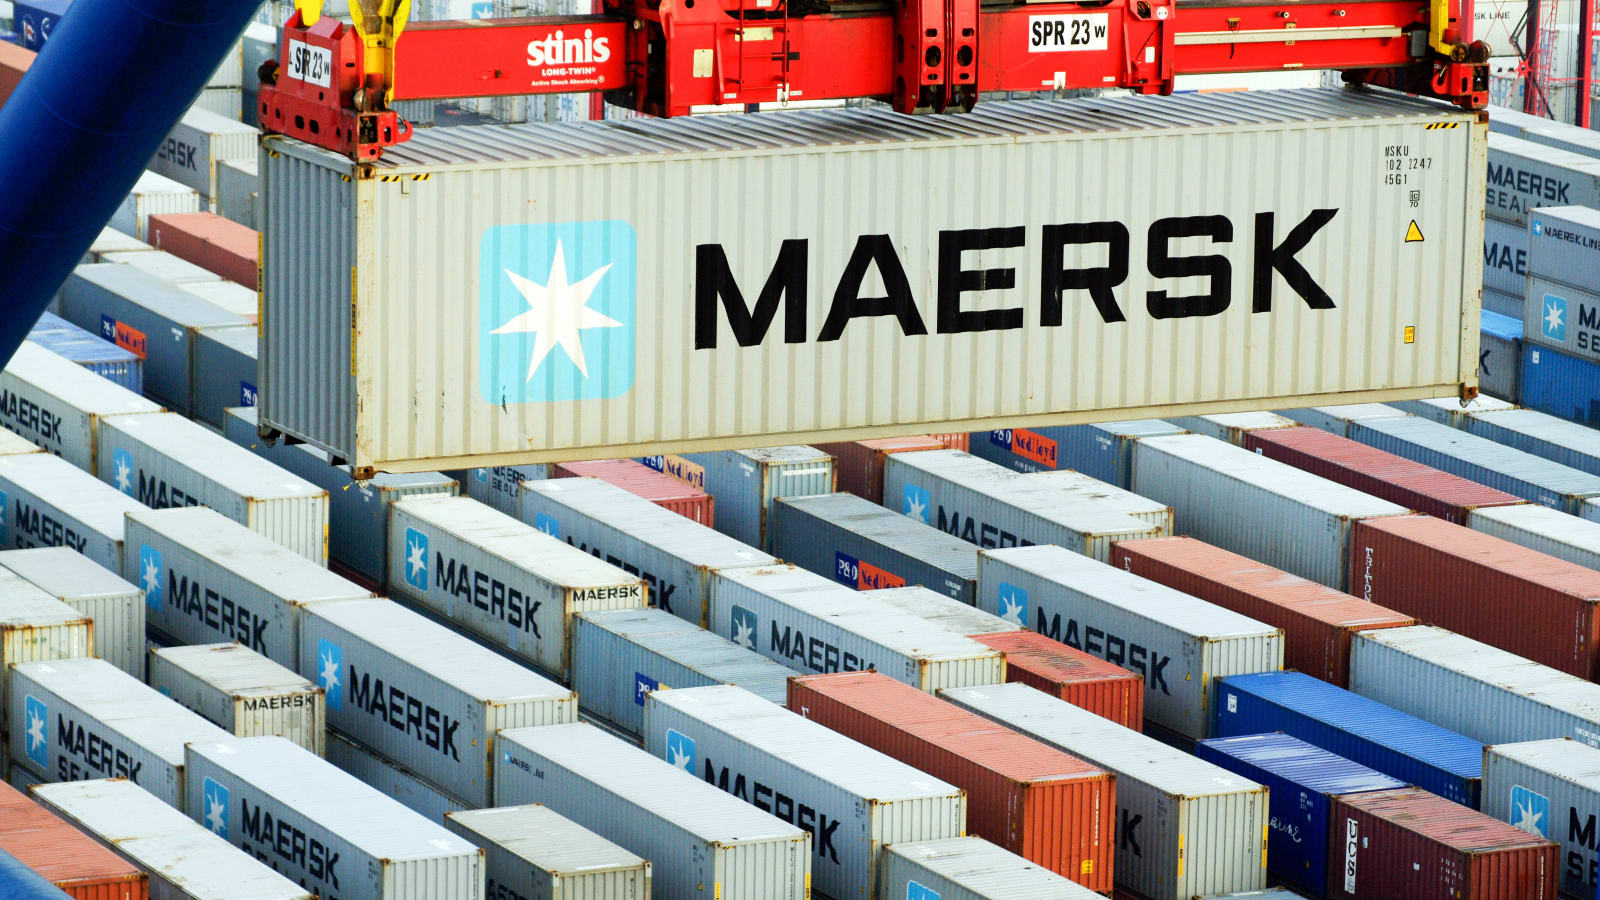 This week's top news in logistics: NotPetya cyberattack on Maersk linked to Russia, Pfizer gears up for COVID19 Vaccine distribution, Chassis shortage in LA-LB likely to persist into 2021, FMC grants temporary tariff relief to CMA CGM, & Amazon expands logistics network in Mexico.